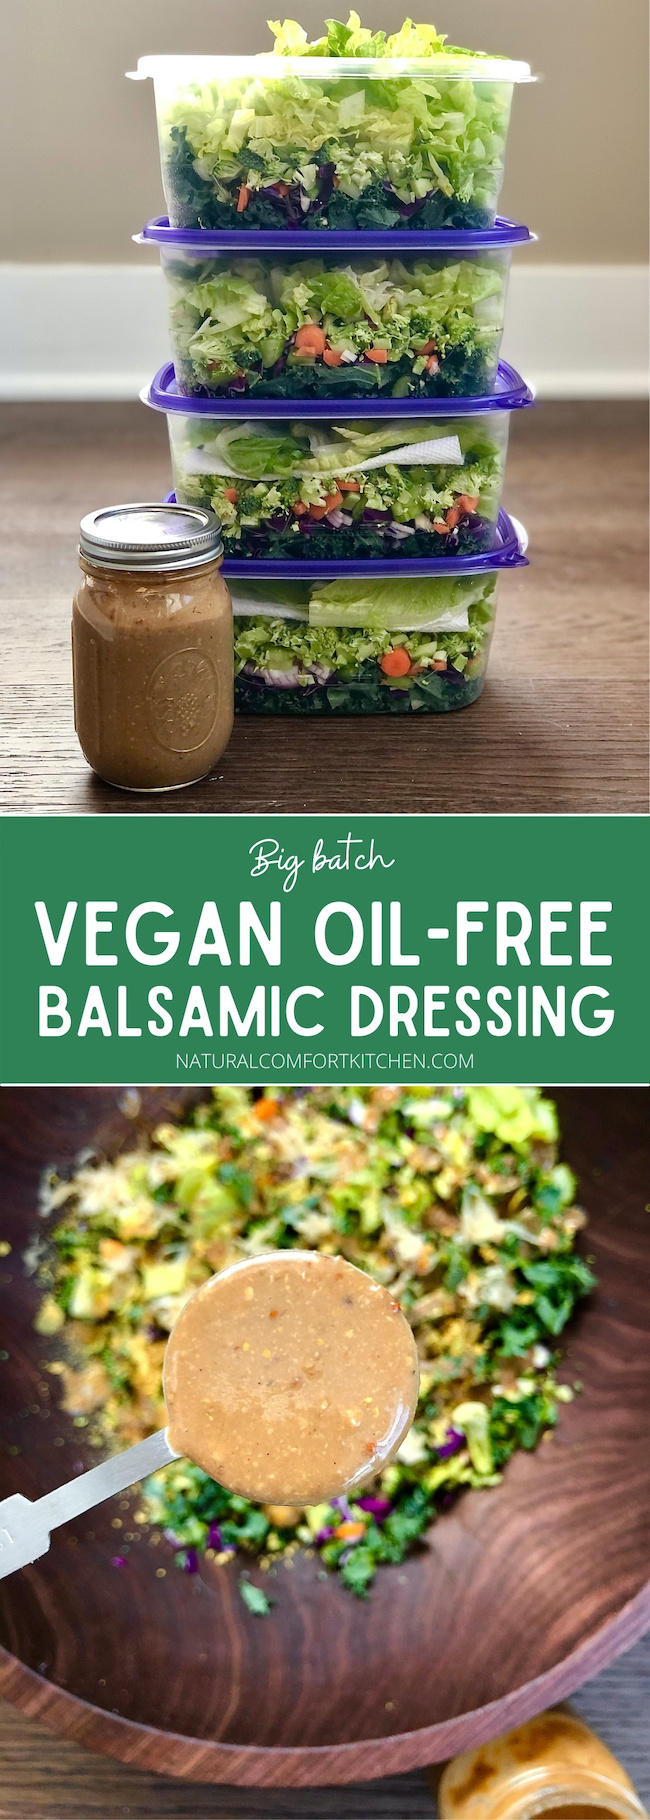 Smooth and creamy, oil-free, vegan balsamic dressing that keeps for weeks in the fridge!